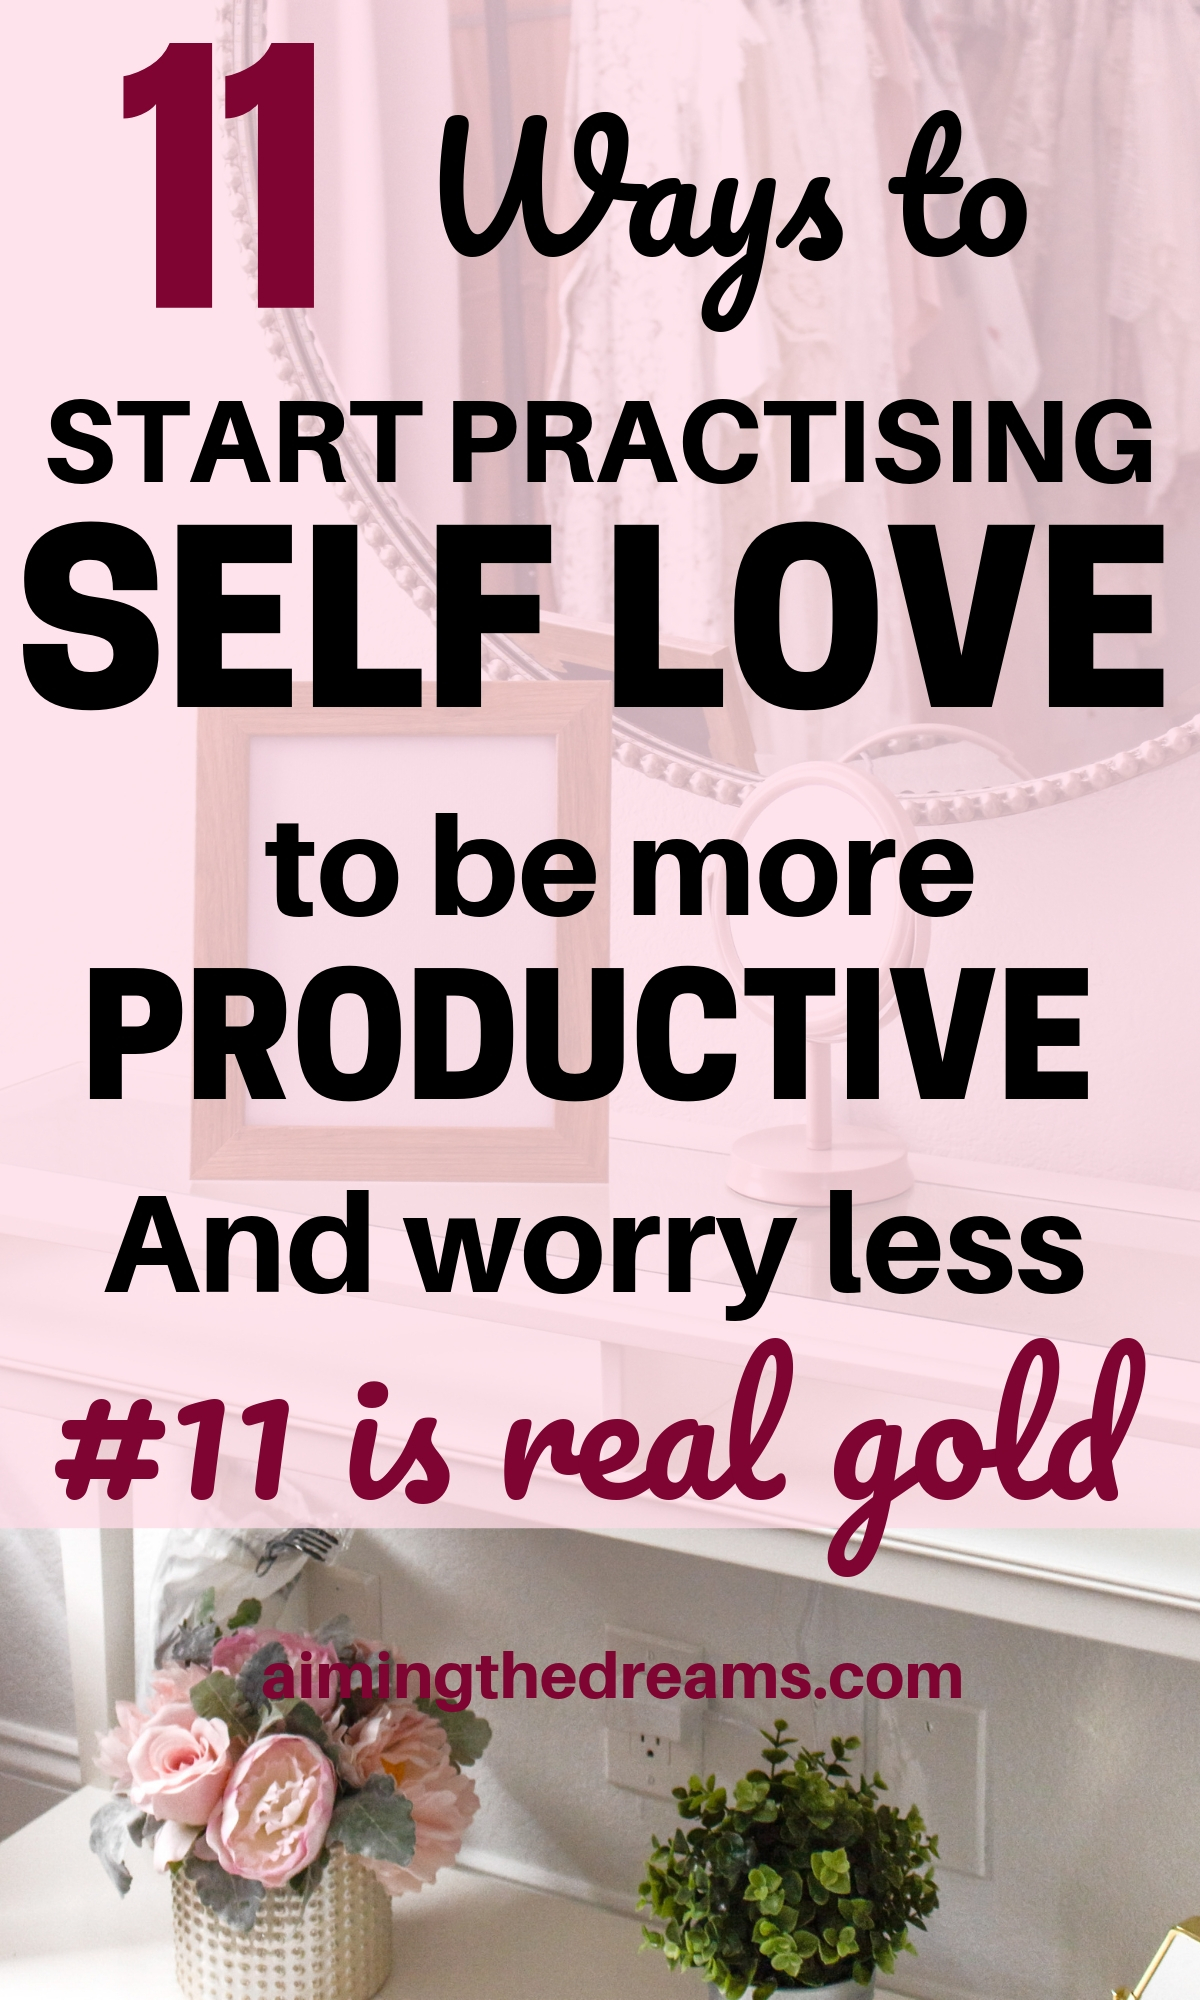 11 ways to practice self love and be more productive